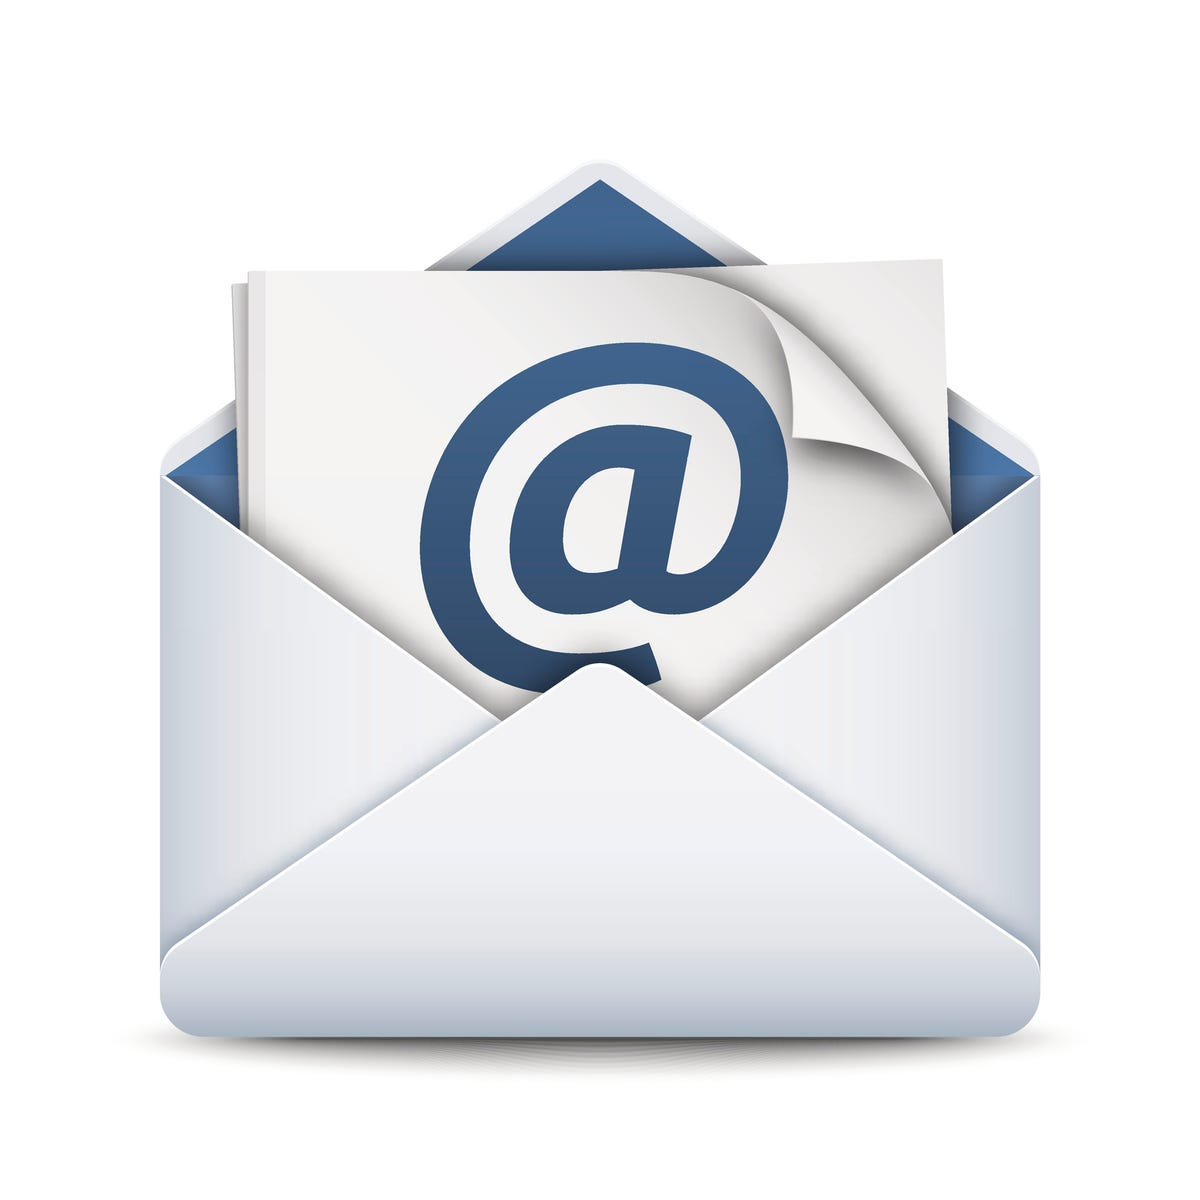 Email syncing issues could be related to verification process